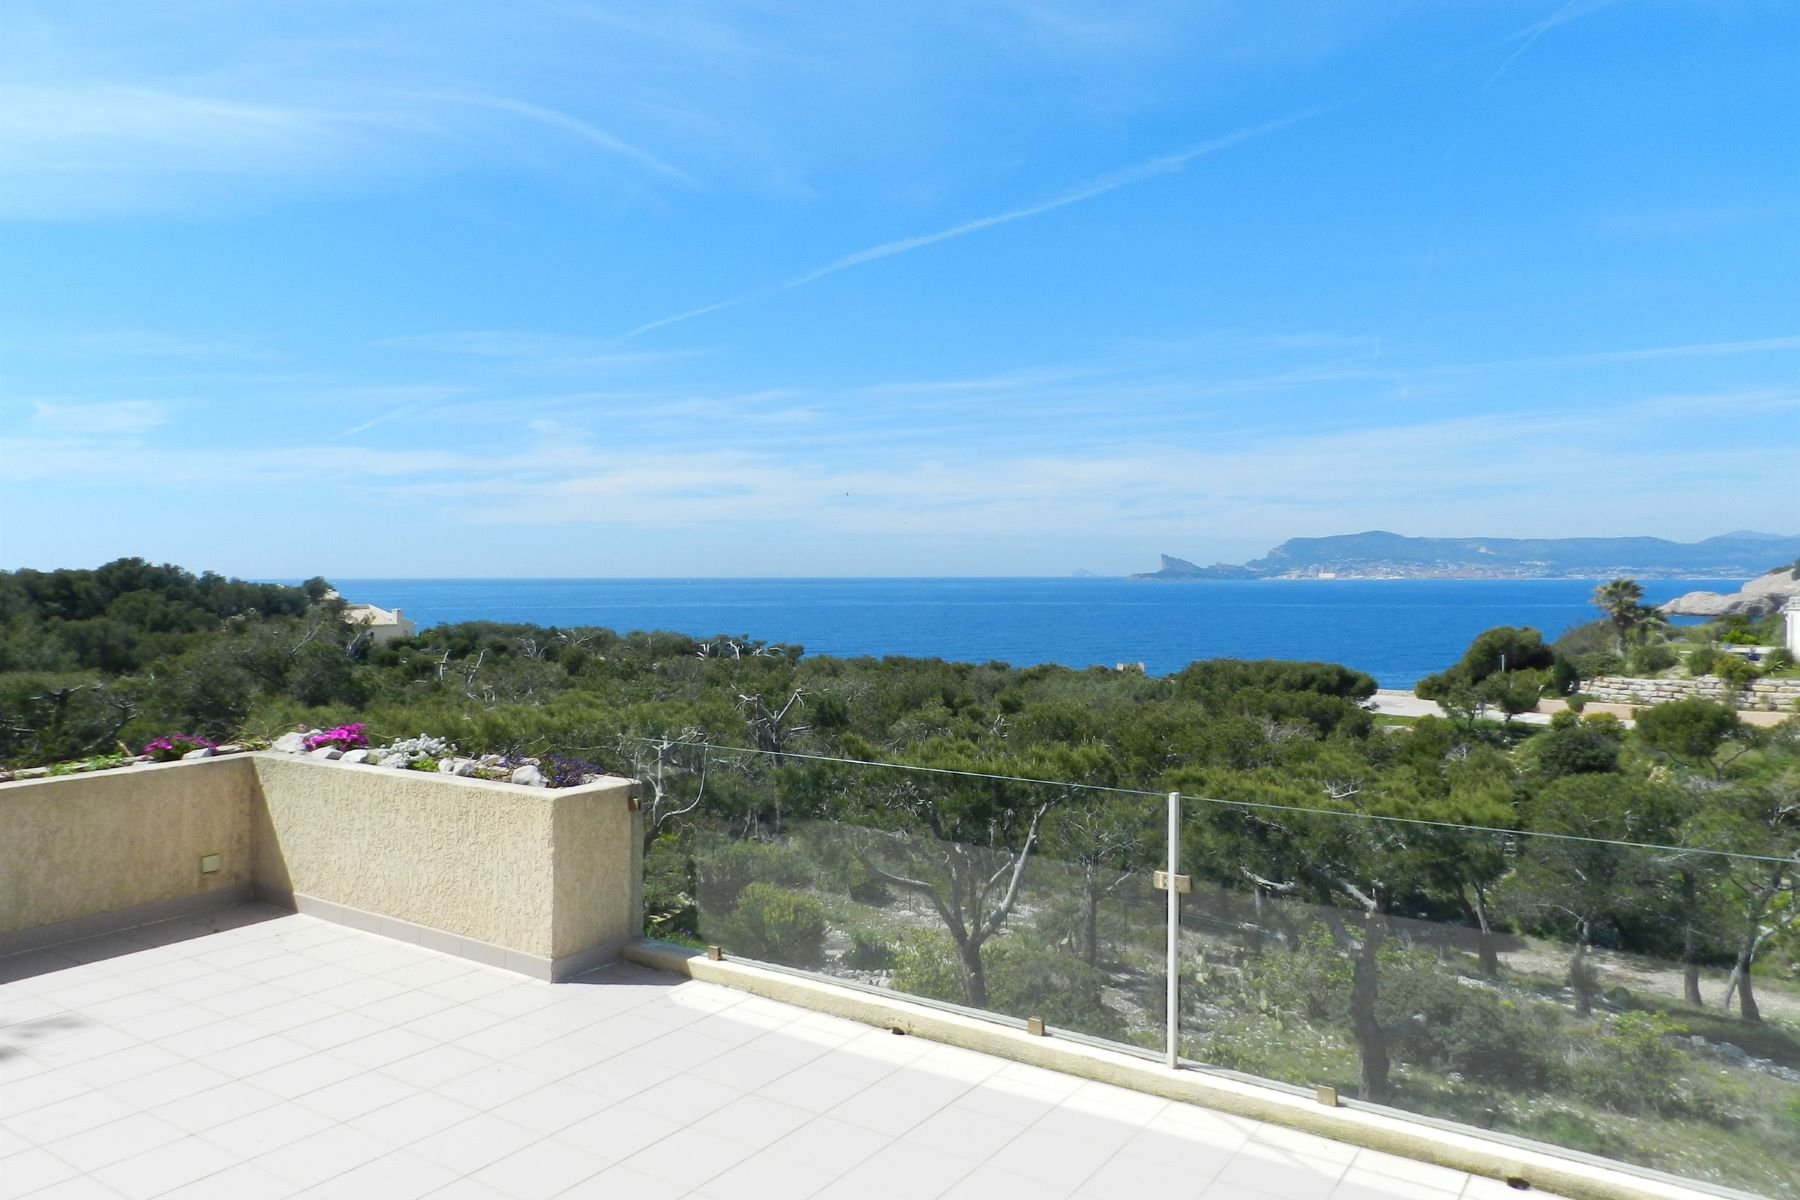 Single Family Home for Sale at View and access to the sea. Private and guardened estate Other Provence-Alpes-Cote D'Azur, Provence-Alpes-Cote D'Azur, 83270 France